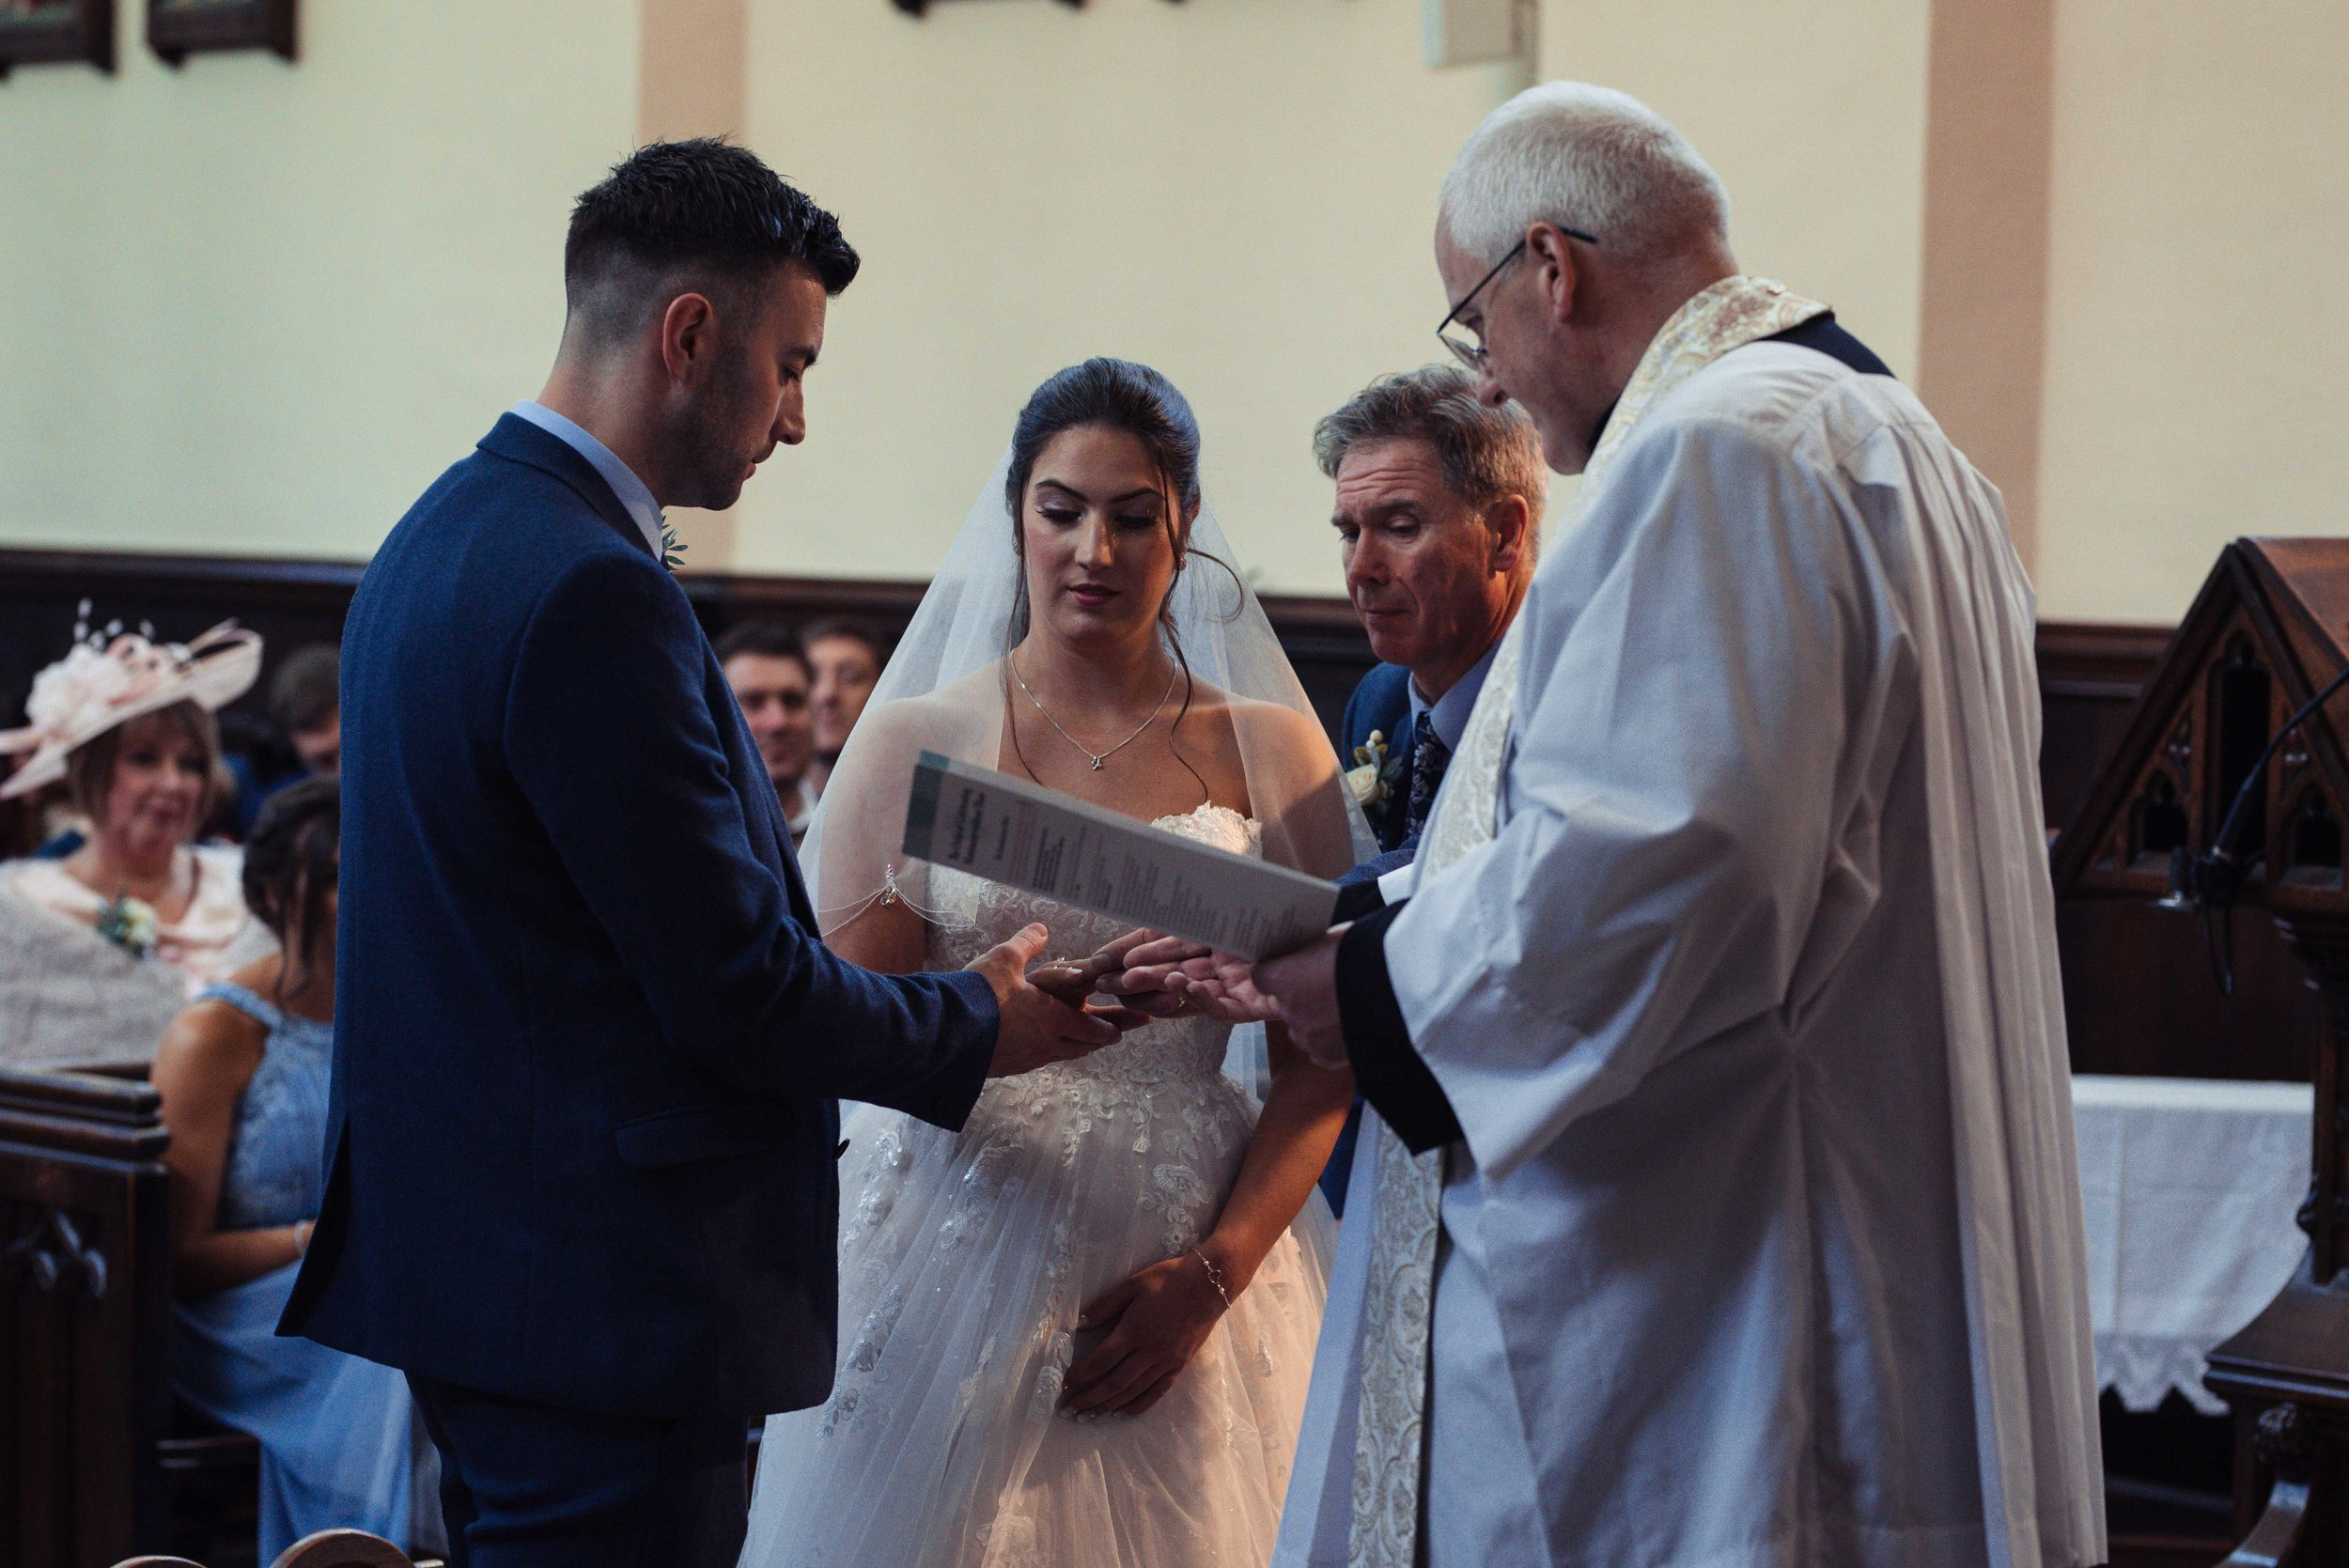 The church marriage service